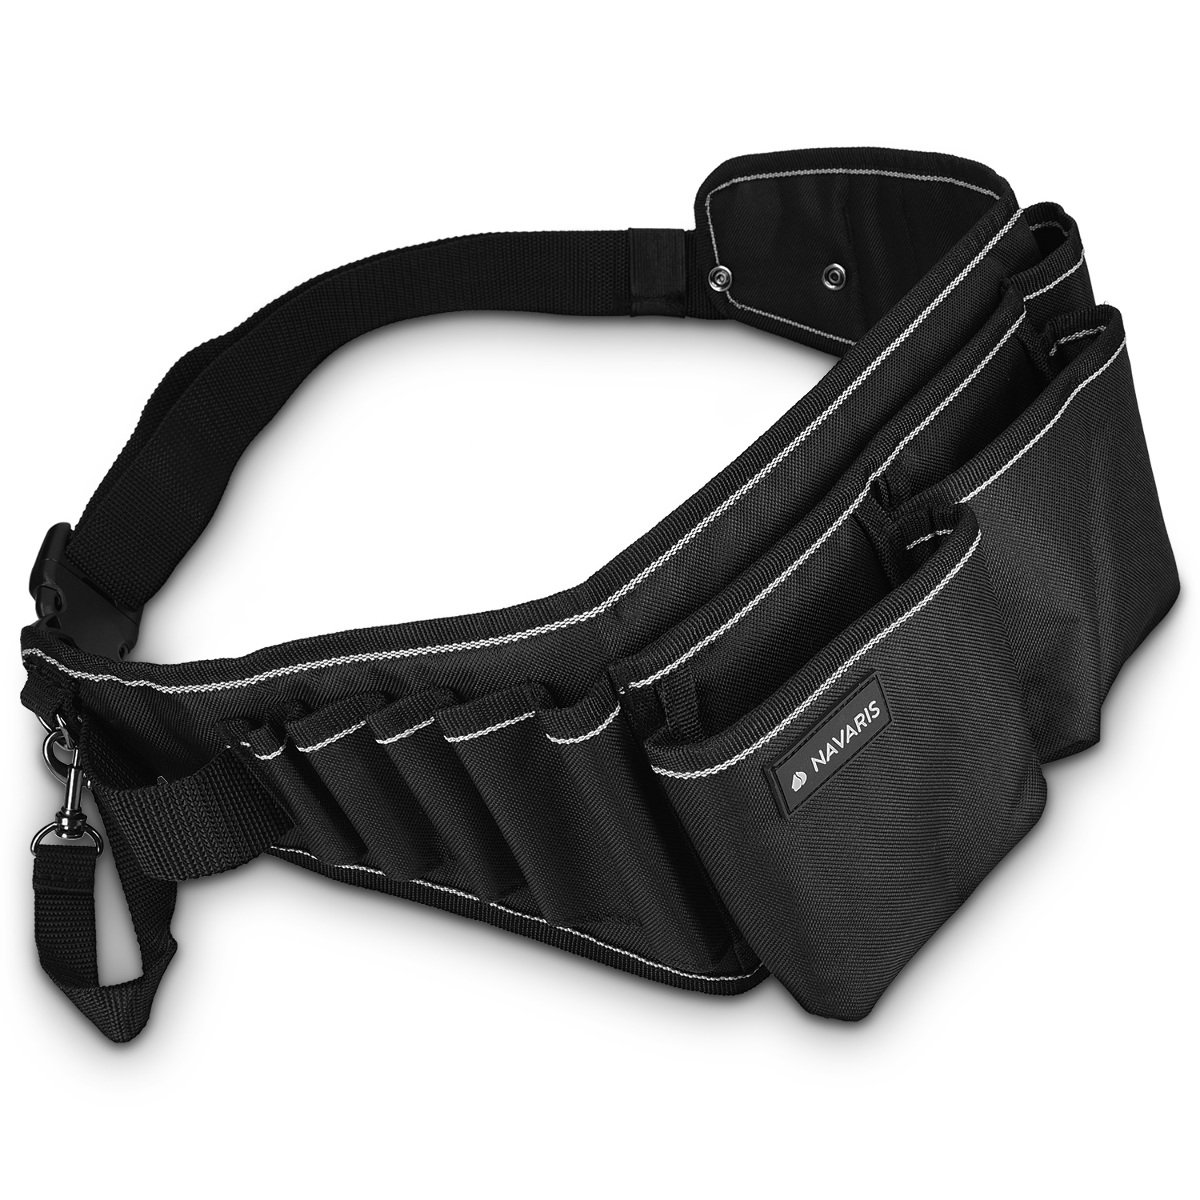 Navaris Tool belt with buckle closure - Many compartments for tools - Hard-wearing craftsman belt tool bag in black gray